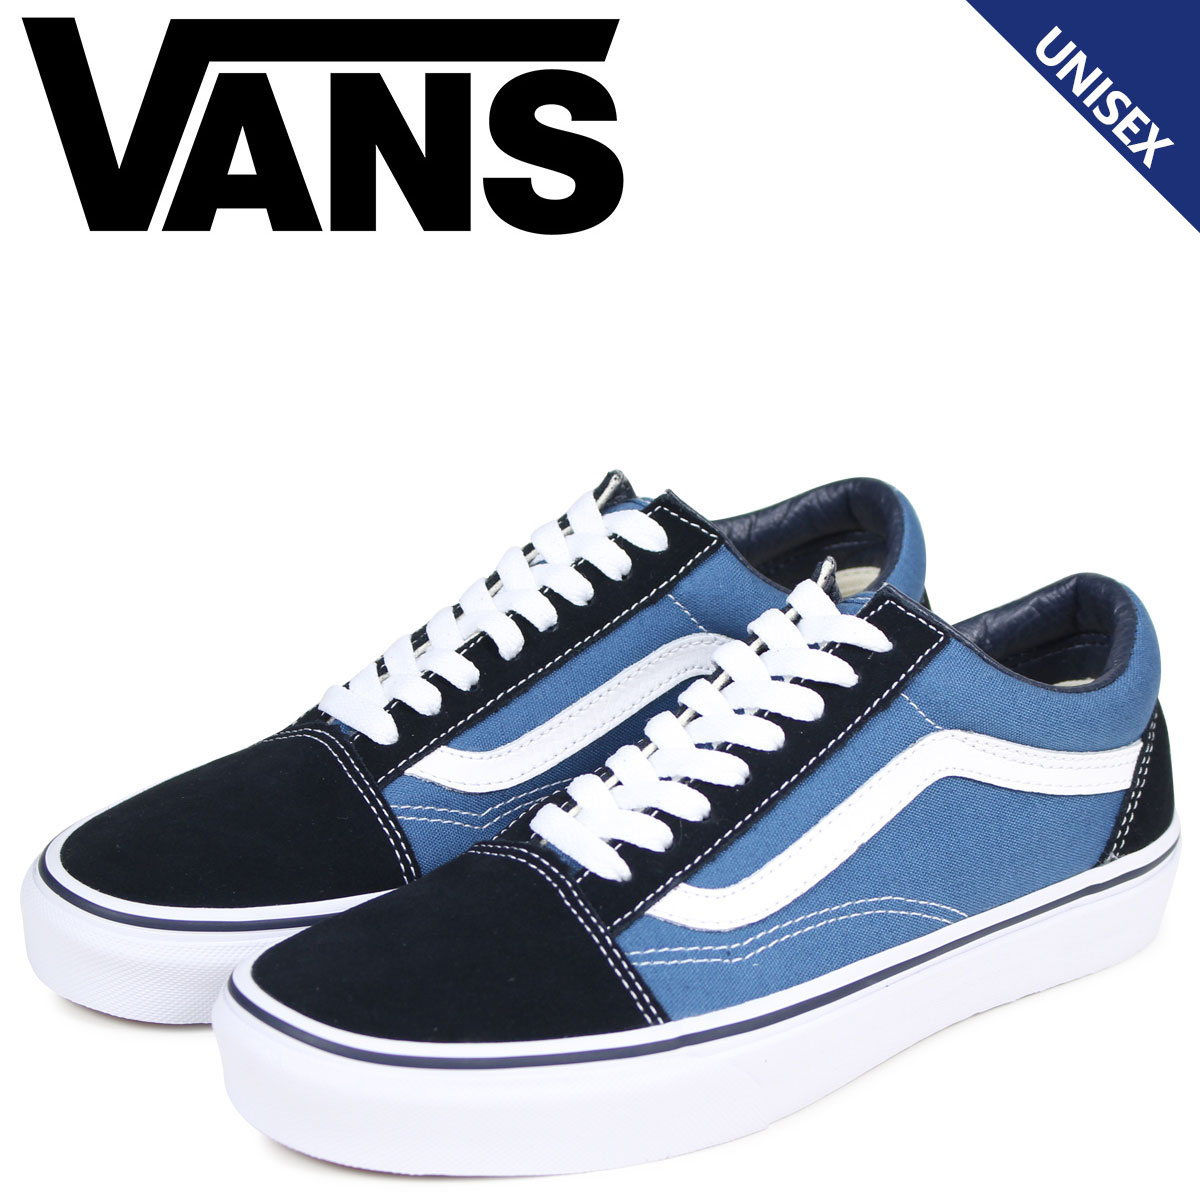 a0e19fcb1b Vans old school sneakers men gap Dis VANS station wagons OLD SKOOL  N000D3HNVY navy  3 1 Shinnyu load